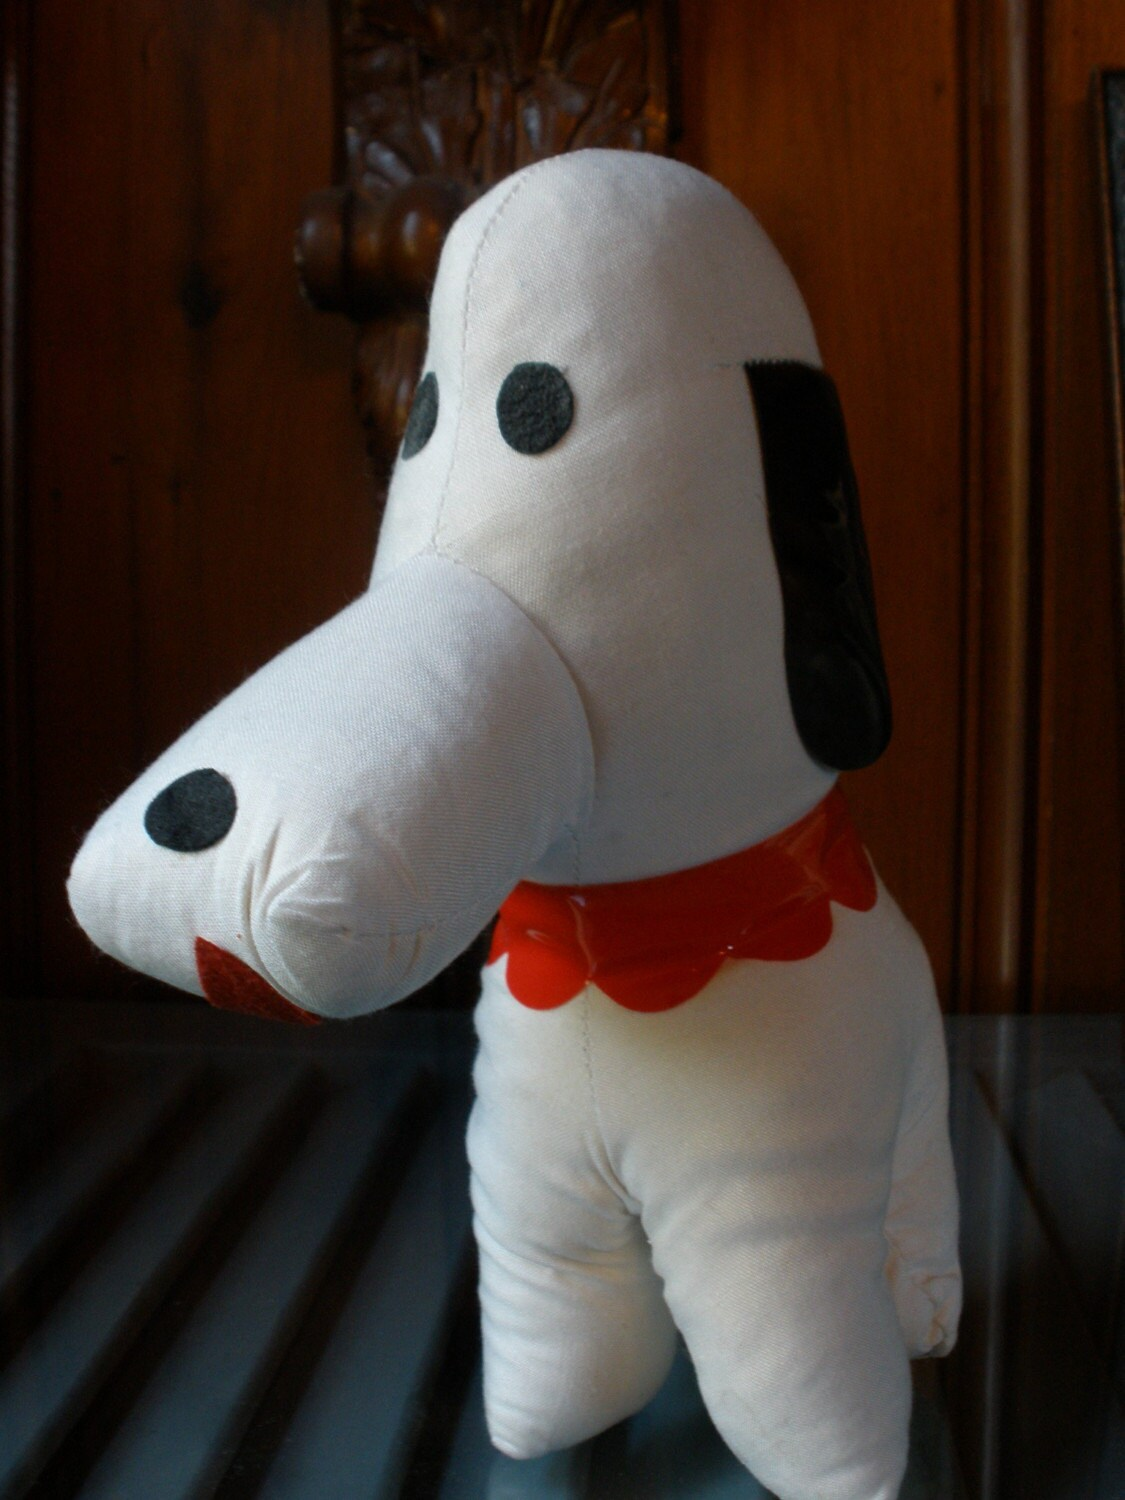 Snoopy. First appearance: October 4, The wildly imaginative, supremely confident, world-famous beagle is a canine master of disguise. As Joe Cool, he's aloof, unflappable, above the fray, the hip dog we'd all like to be.